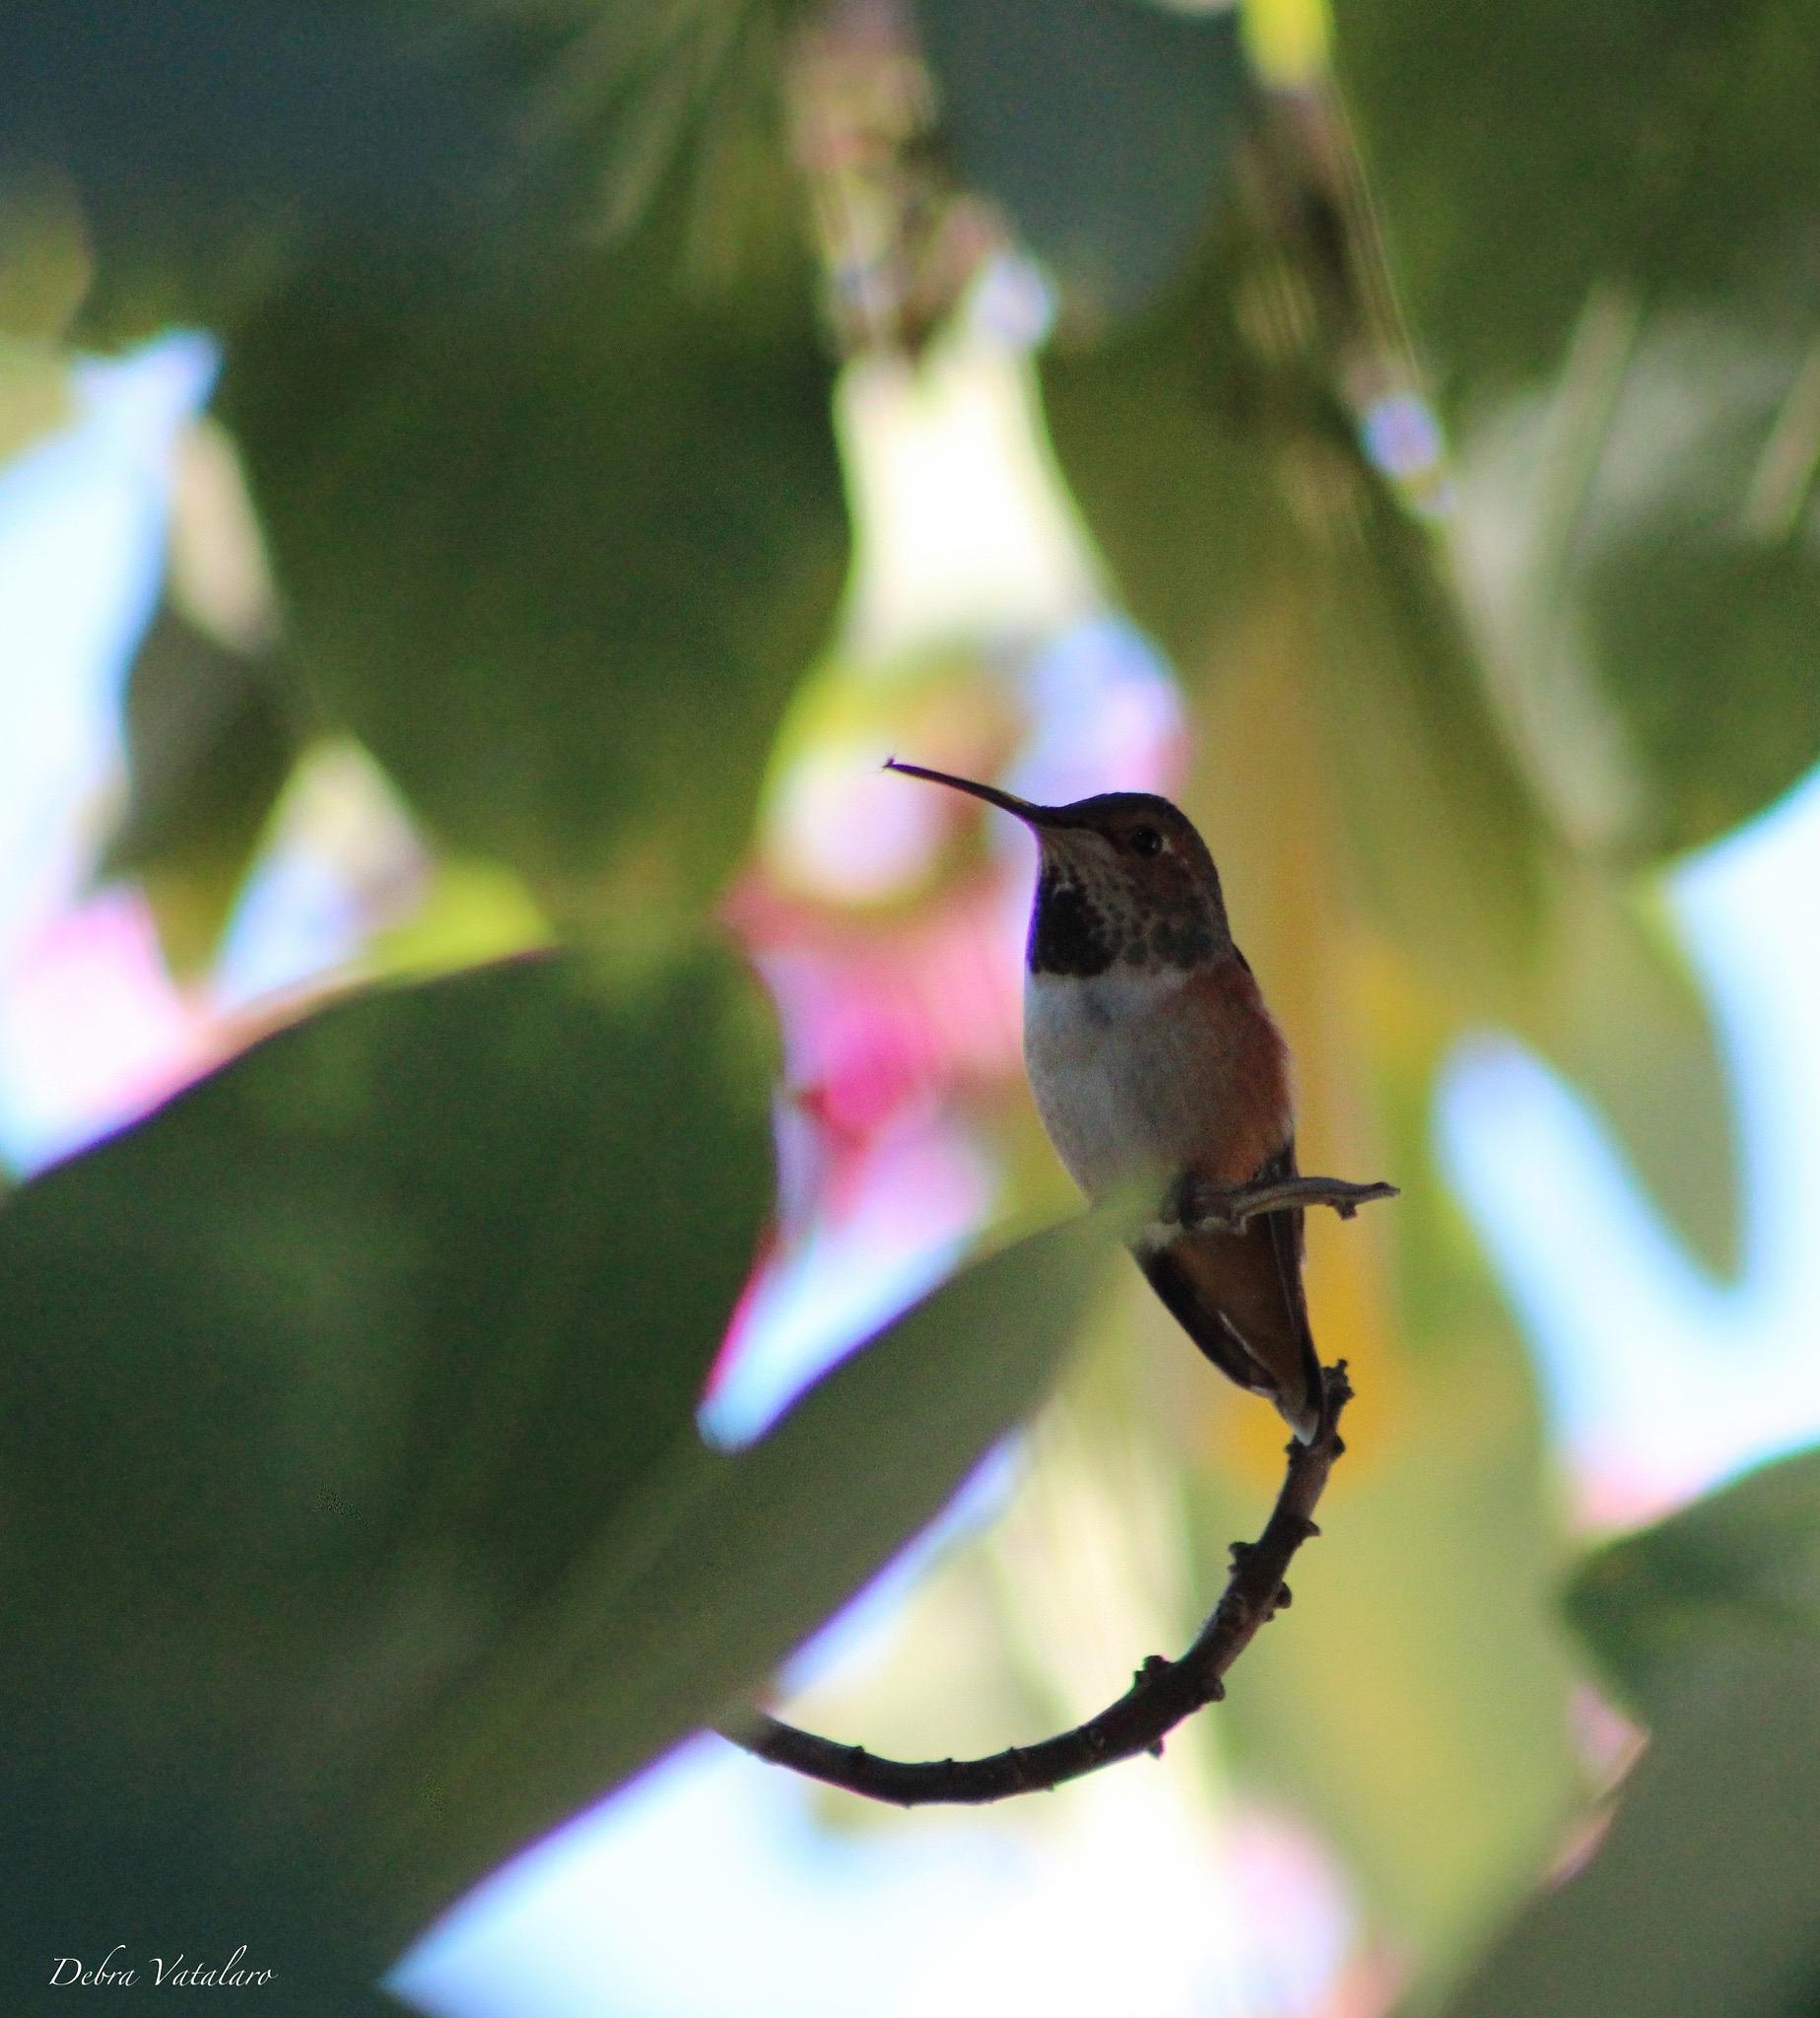 Hummingbird in the Hong Kong orchid by DAVatalaro